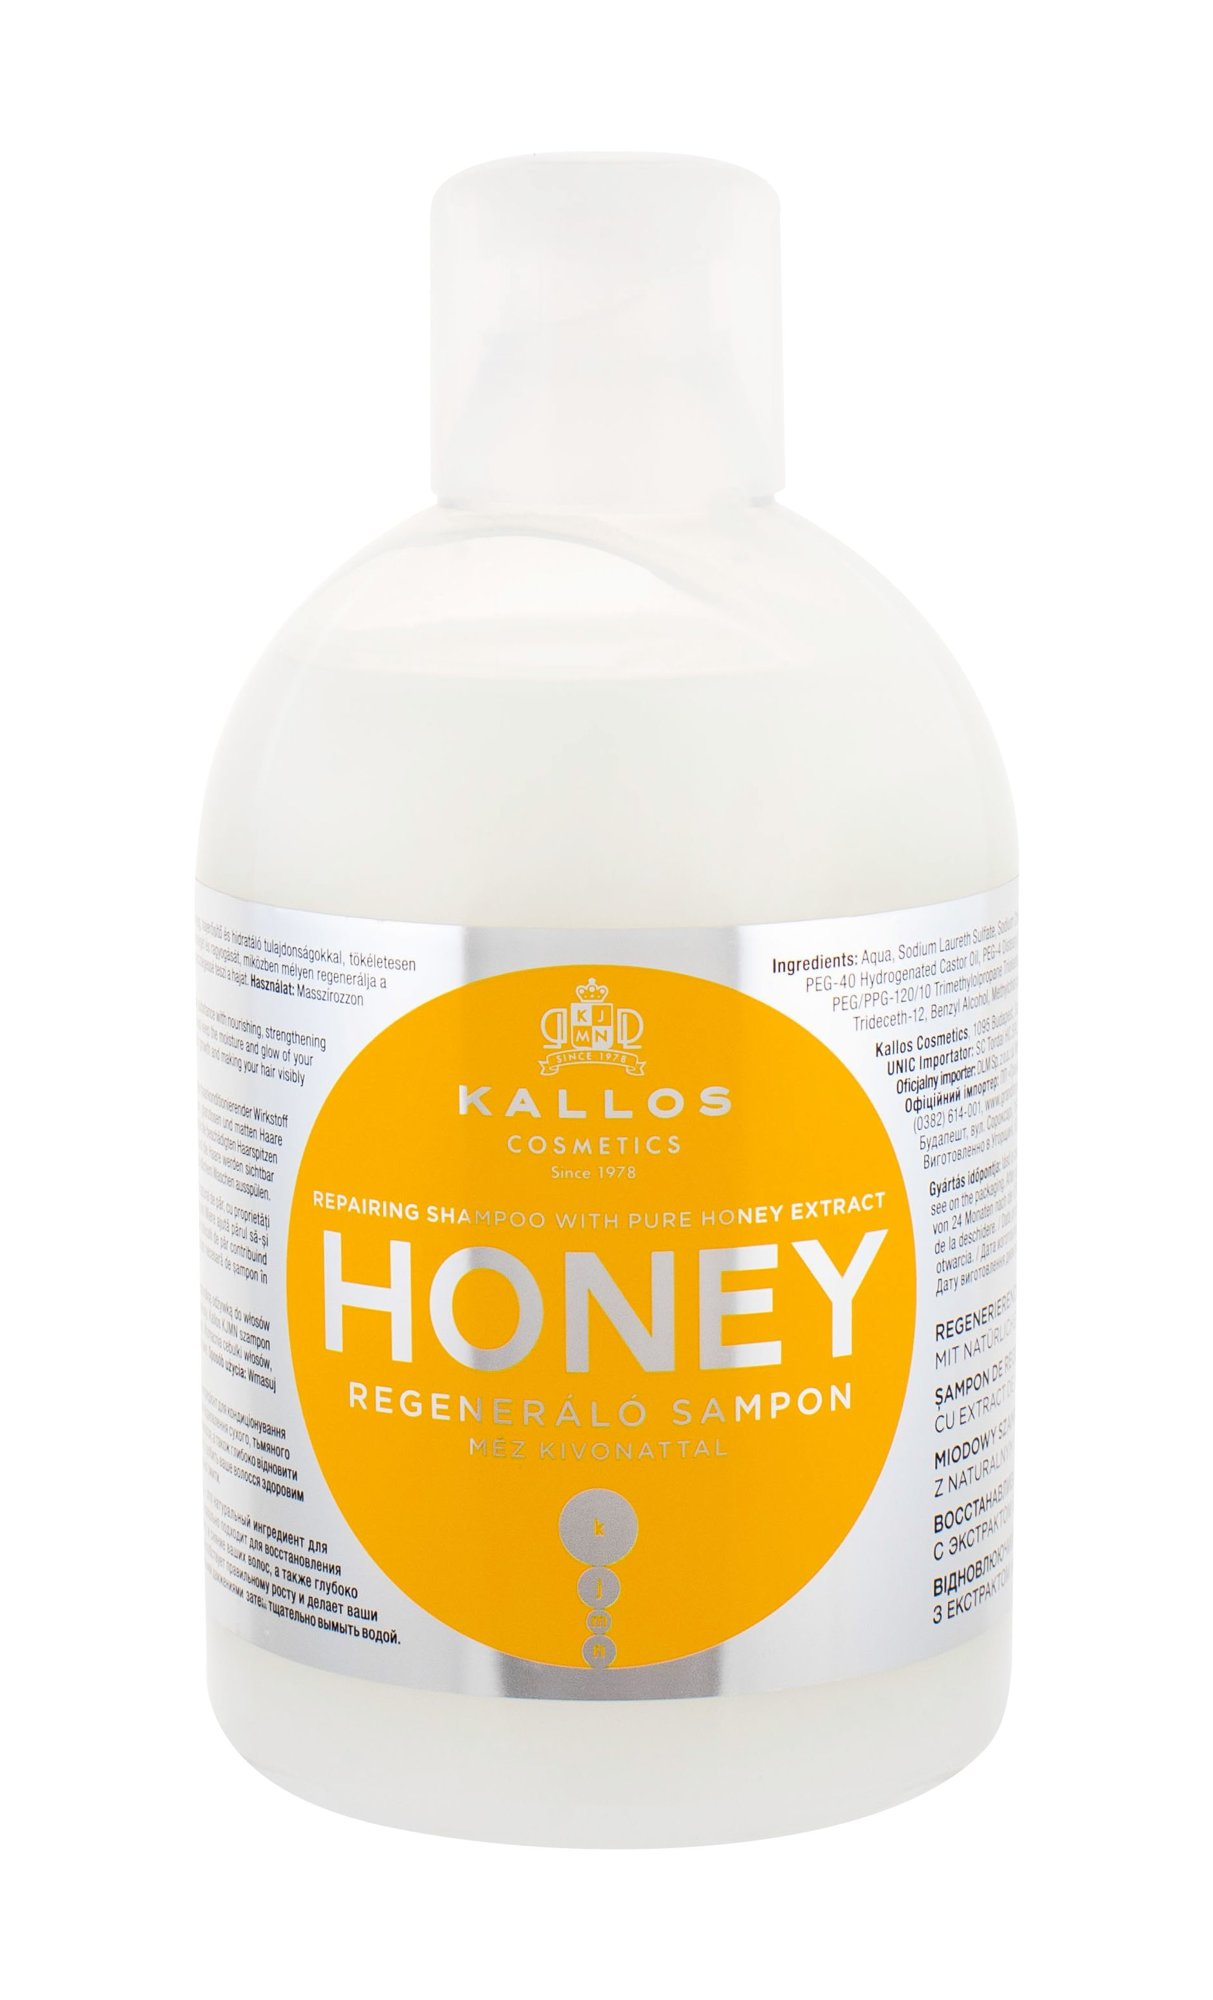 Kallos Cosmetics Honey